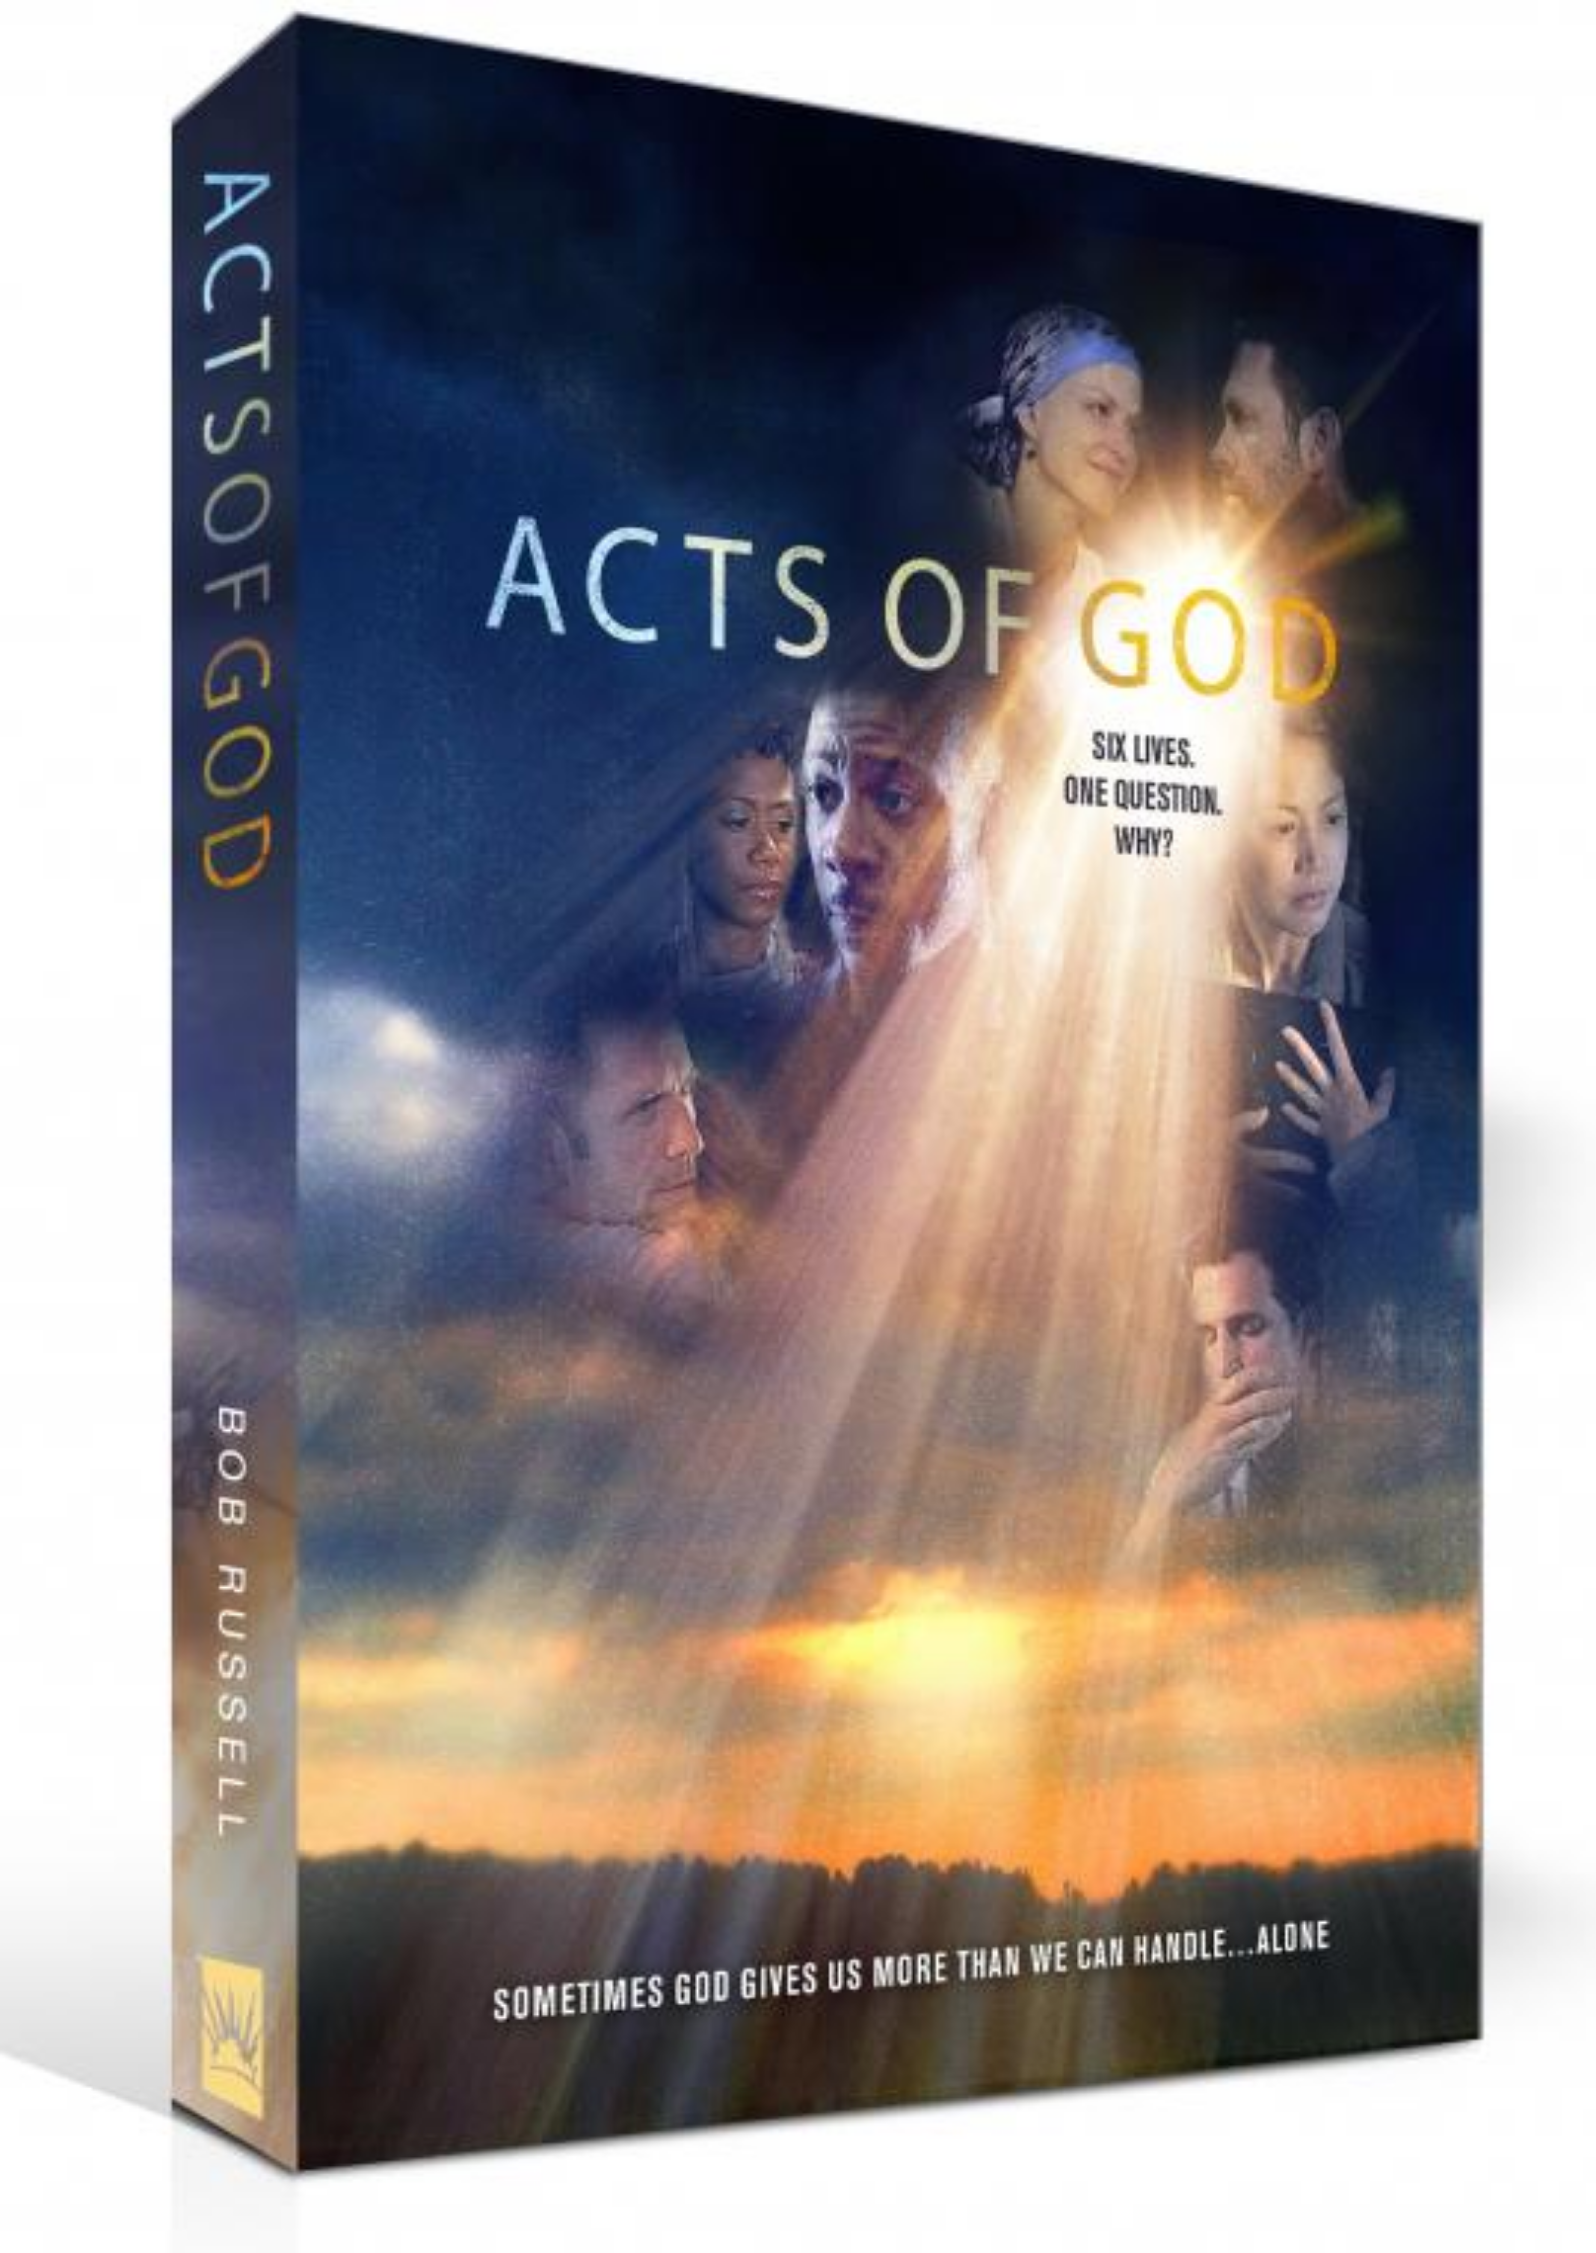 Acts of God Christian Movie Film on DVD Bob Russell